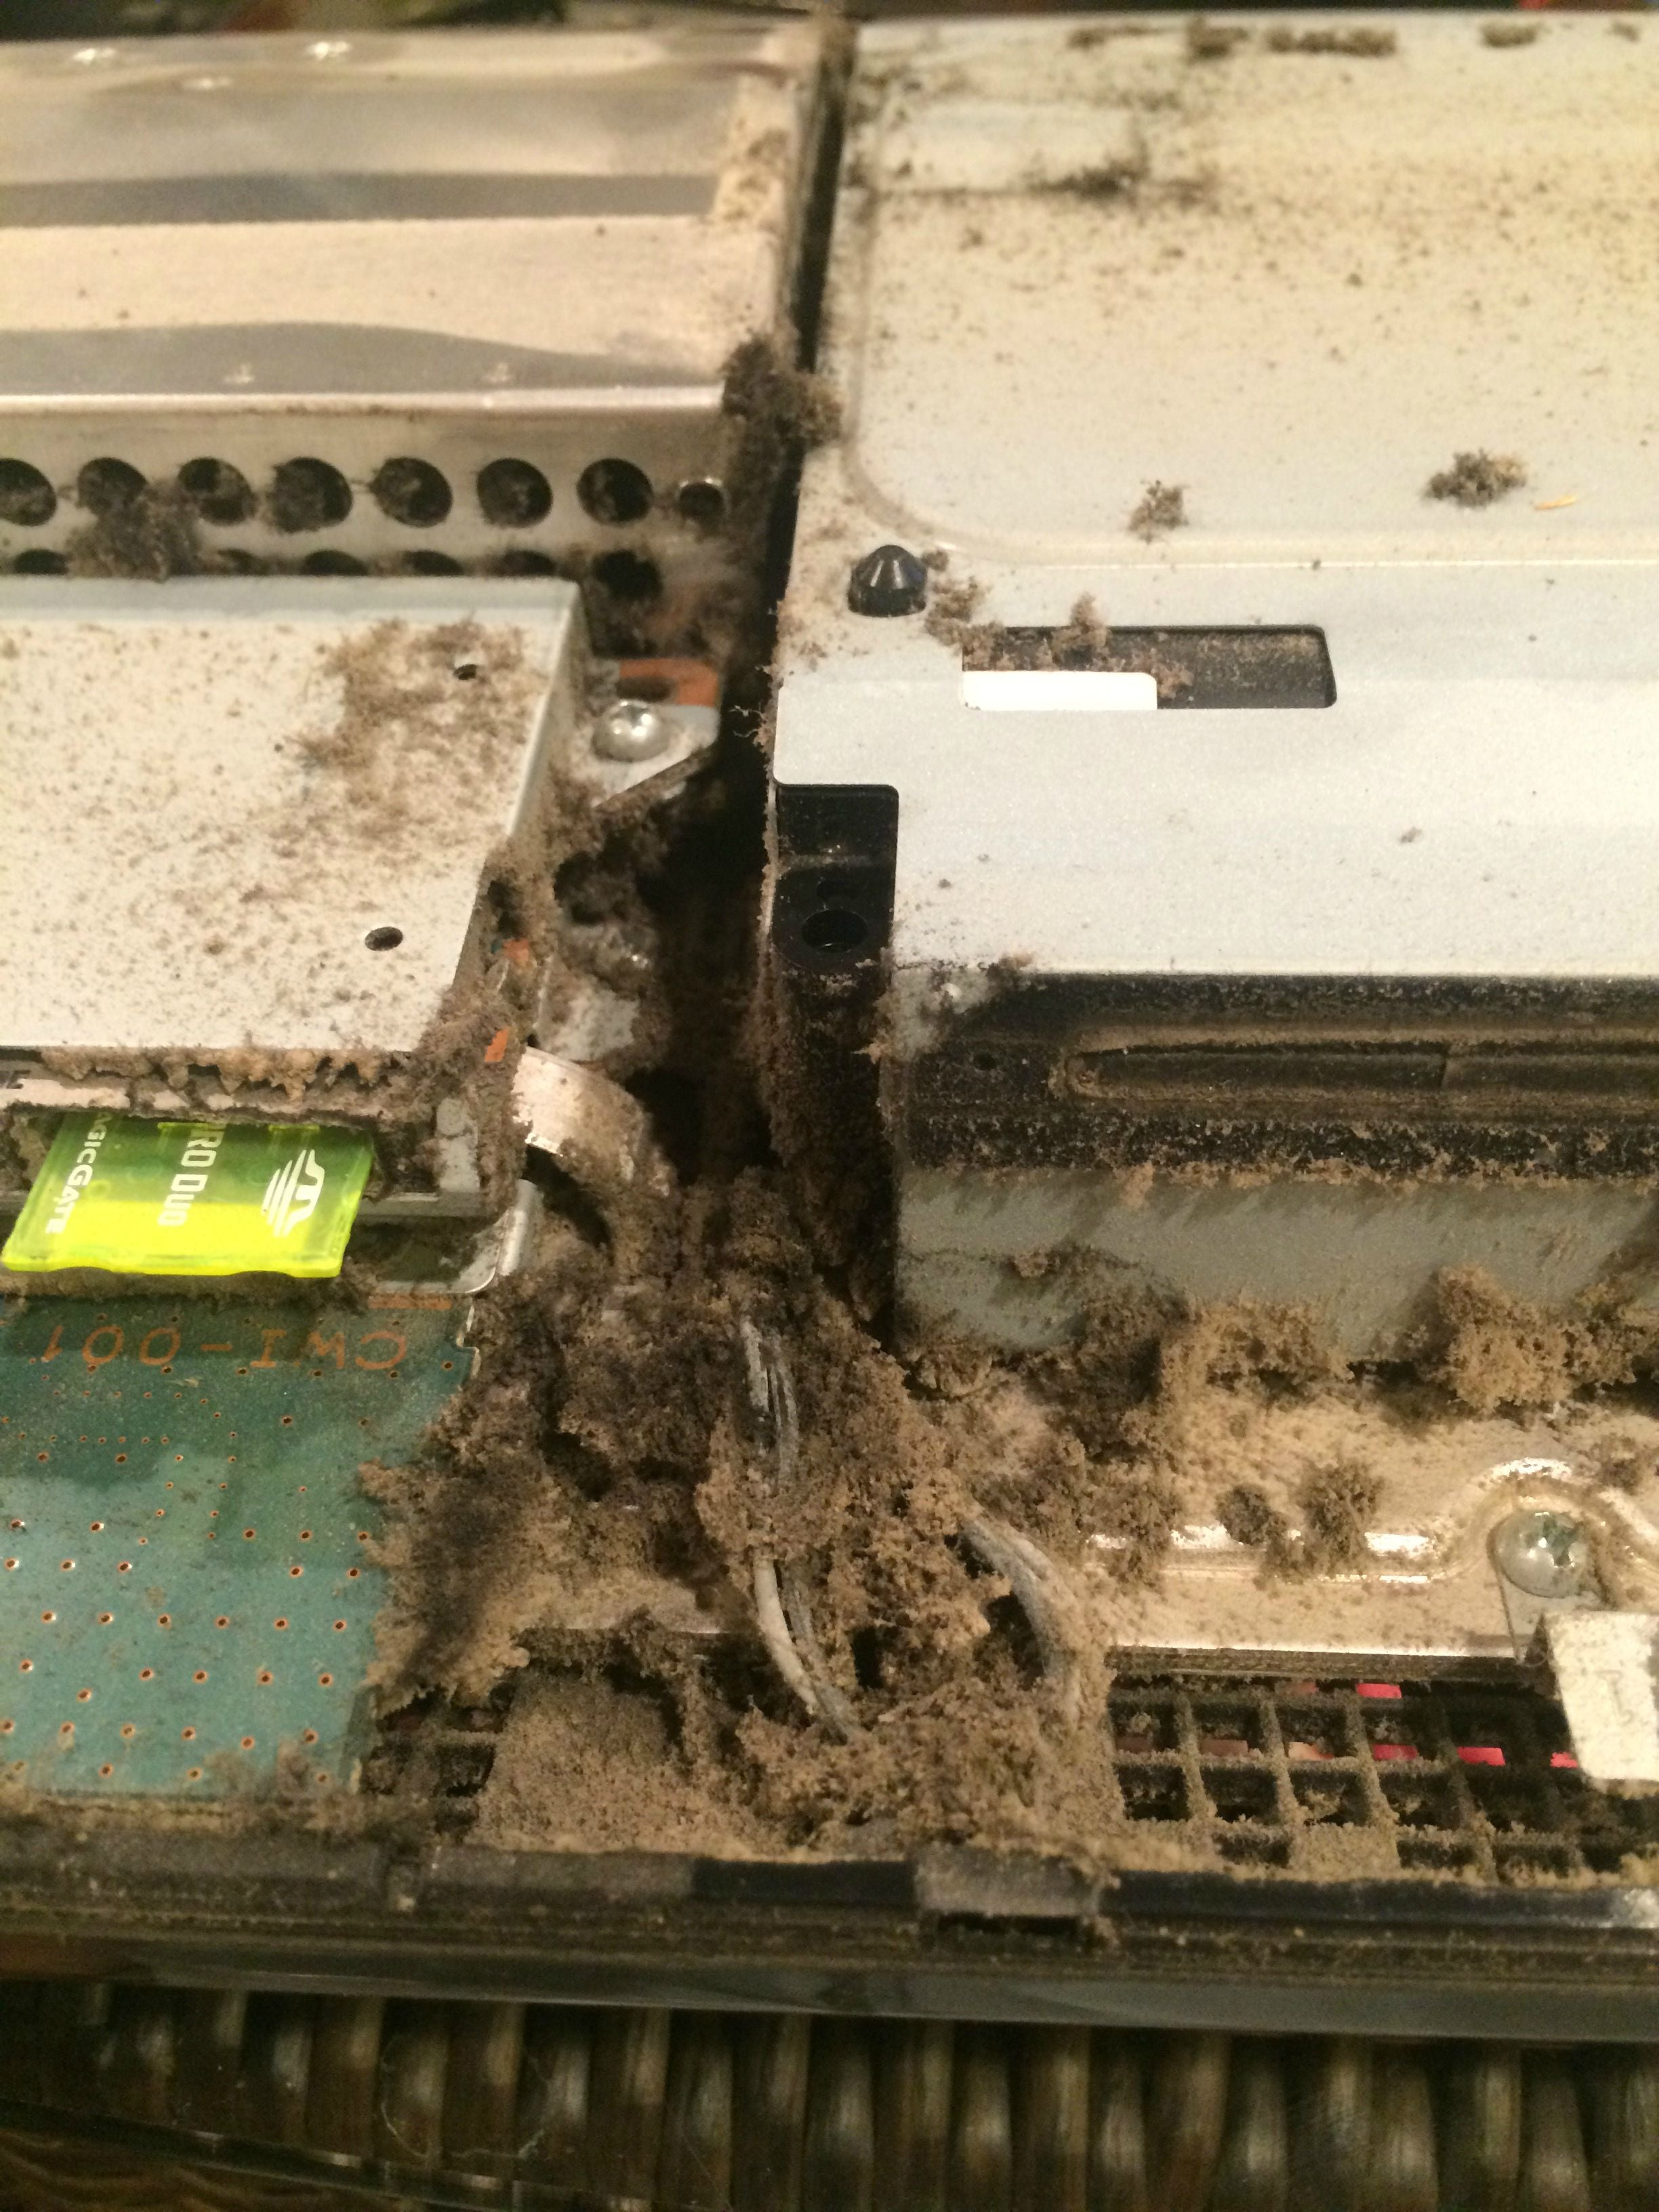 Reminder: The Inside Of Your PS3 Is (Probably) Disgusting